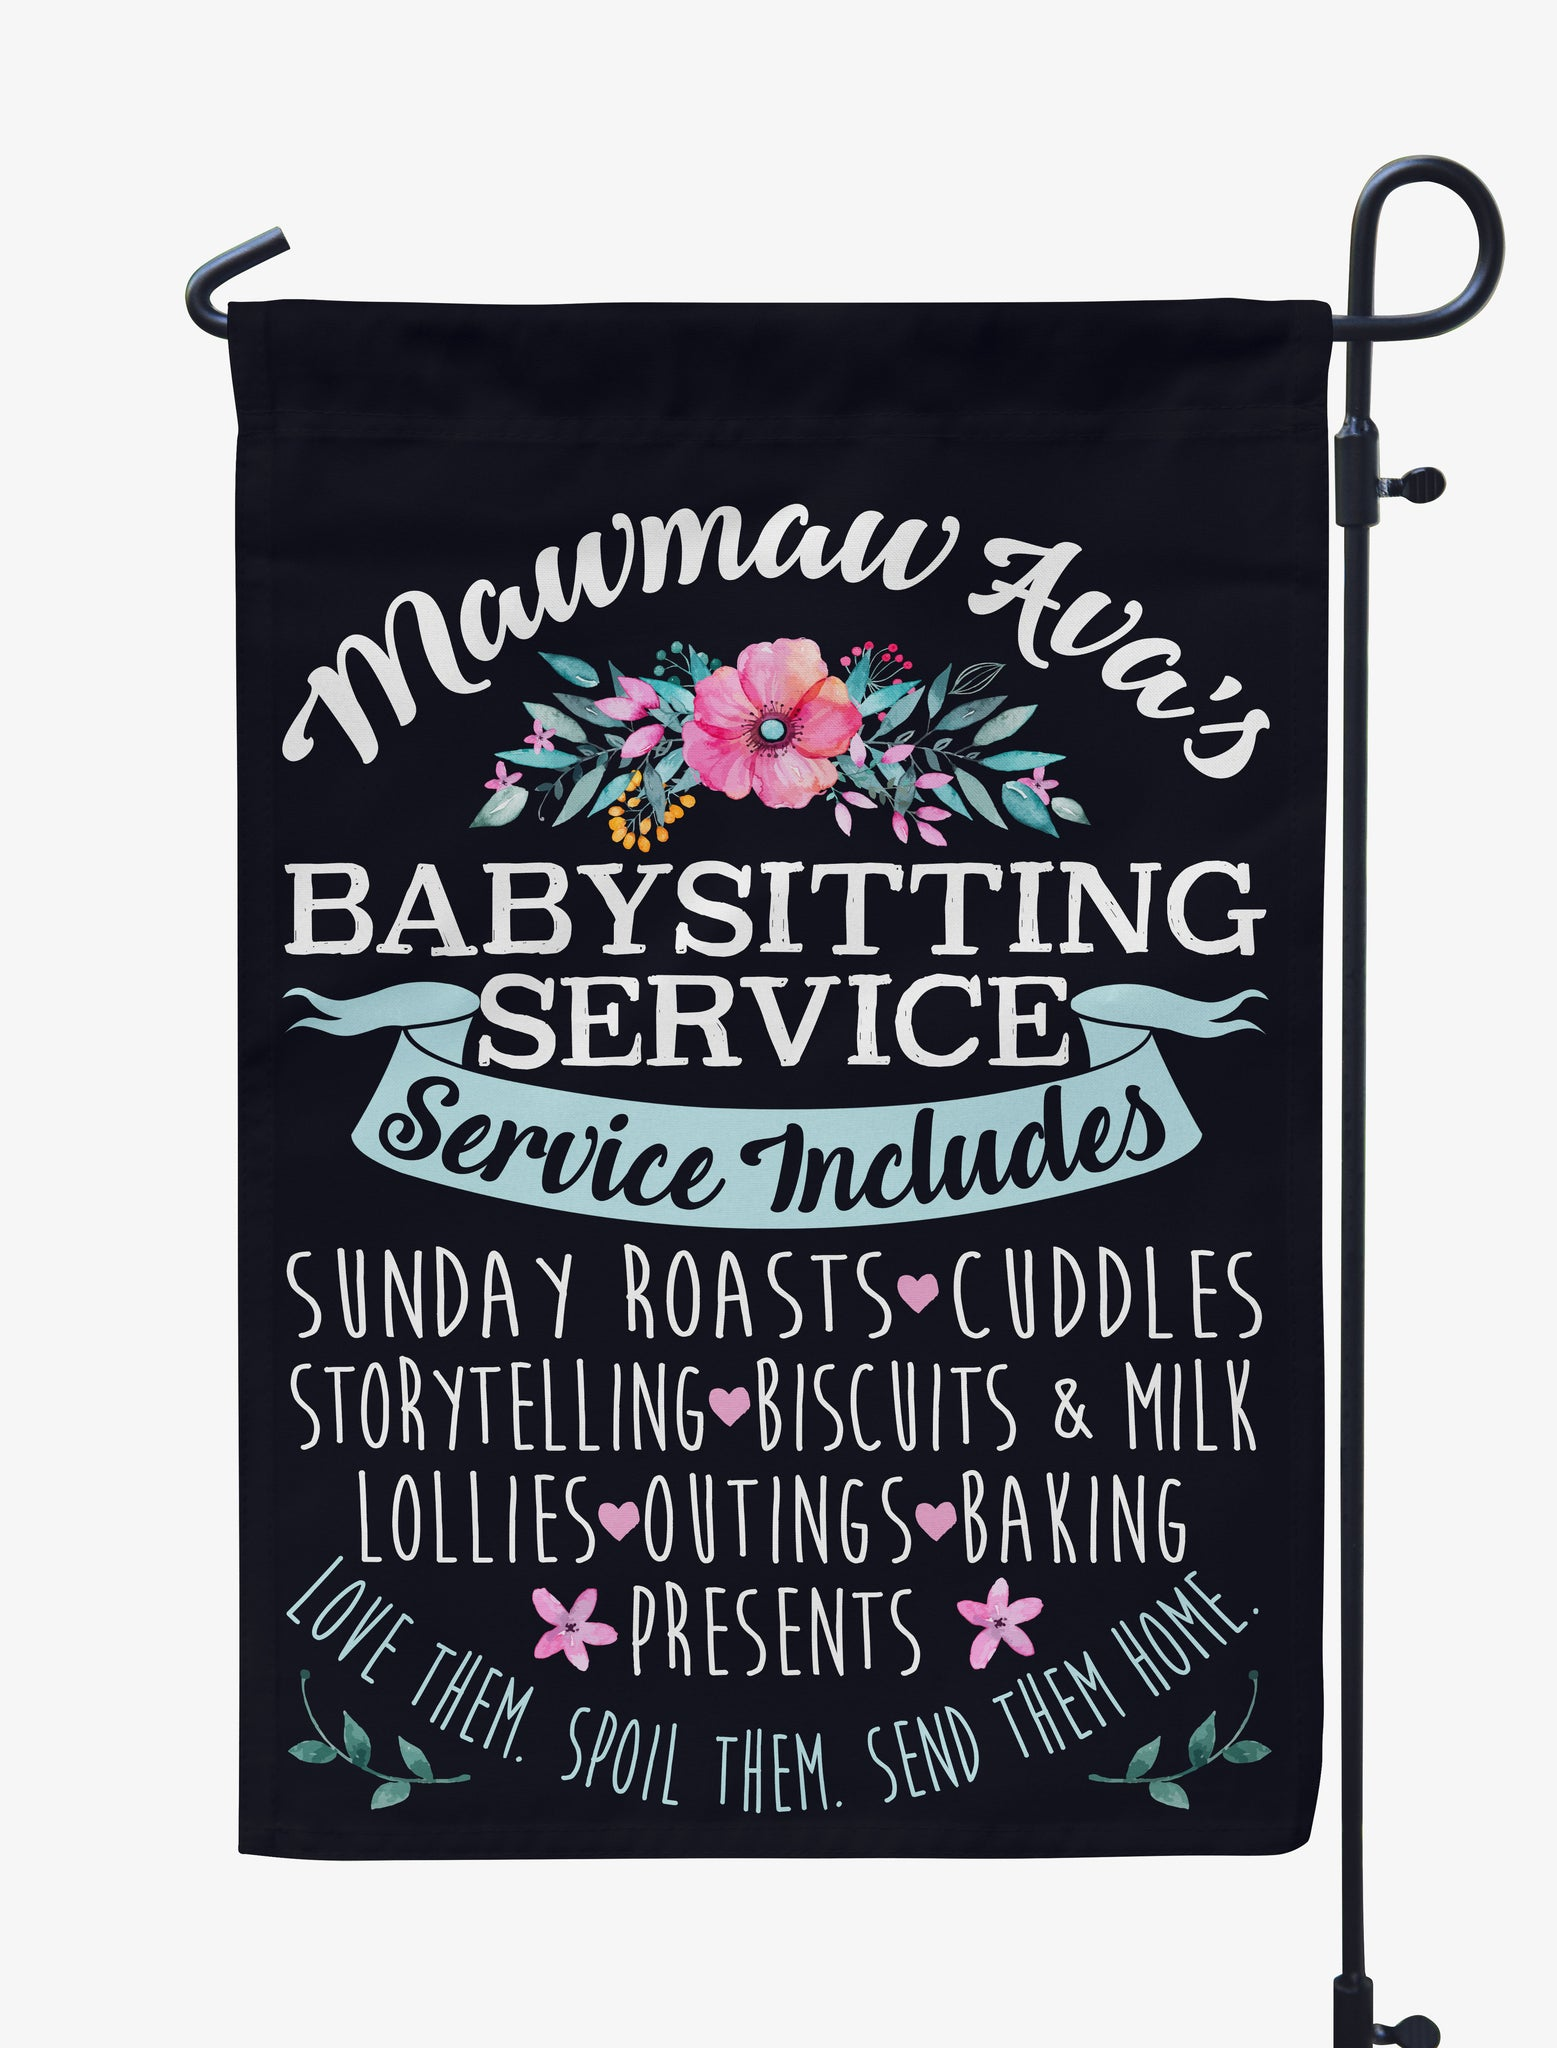 Personalized Baby-Sitting Services Flag